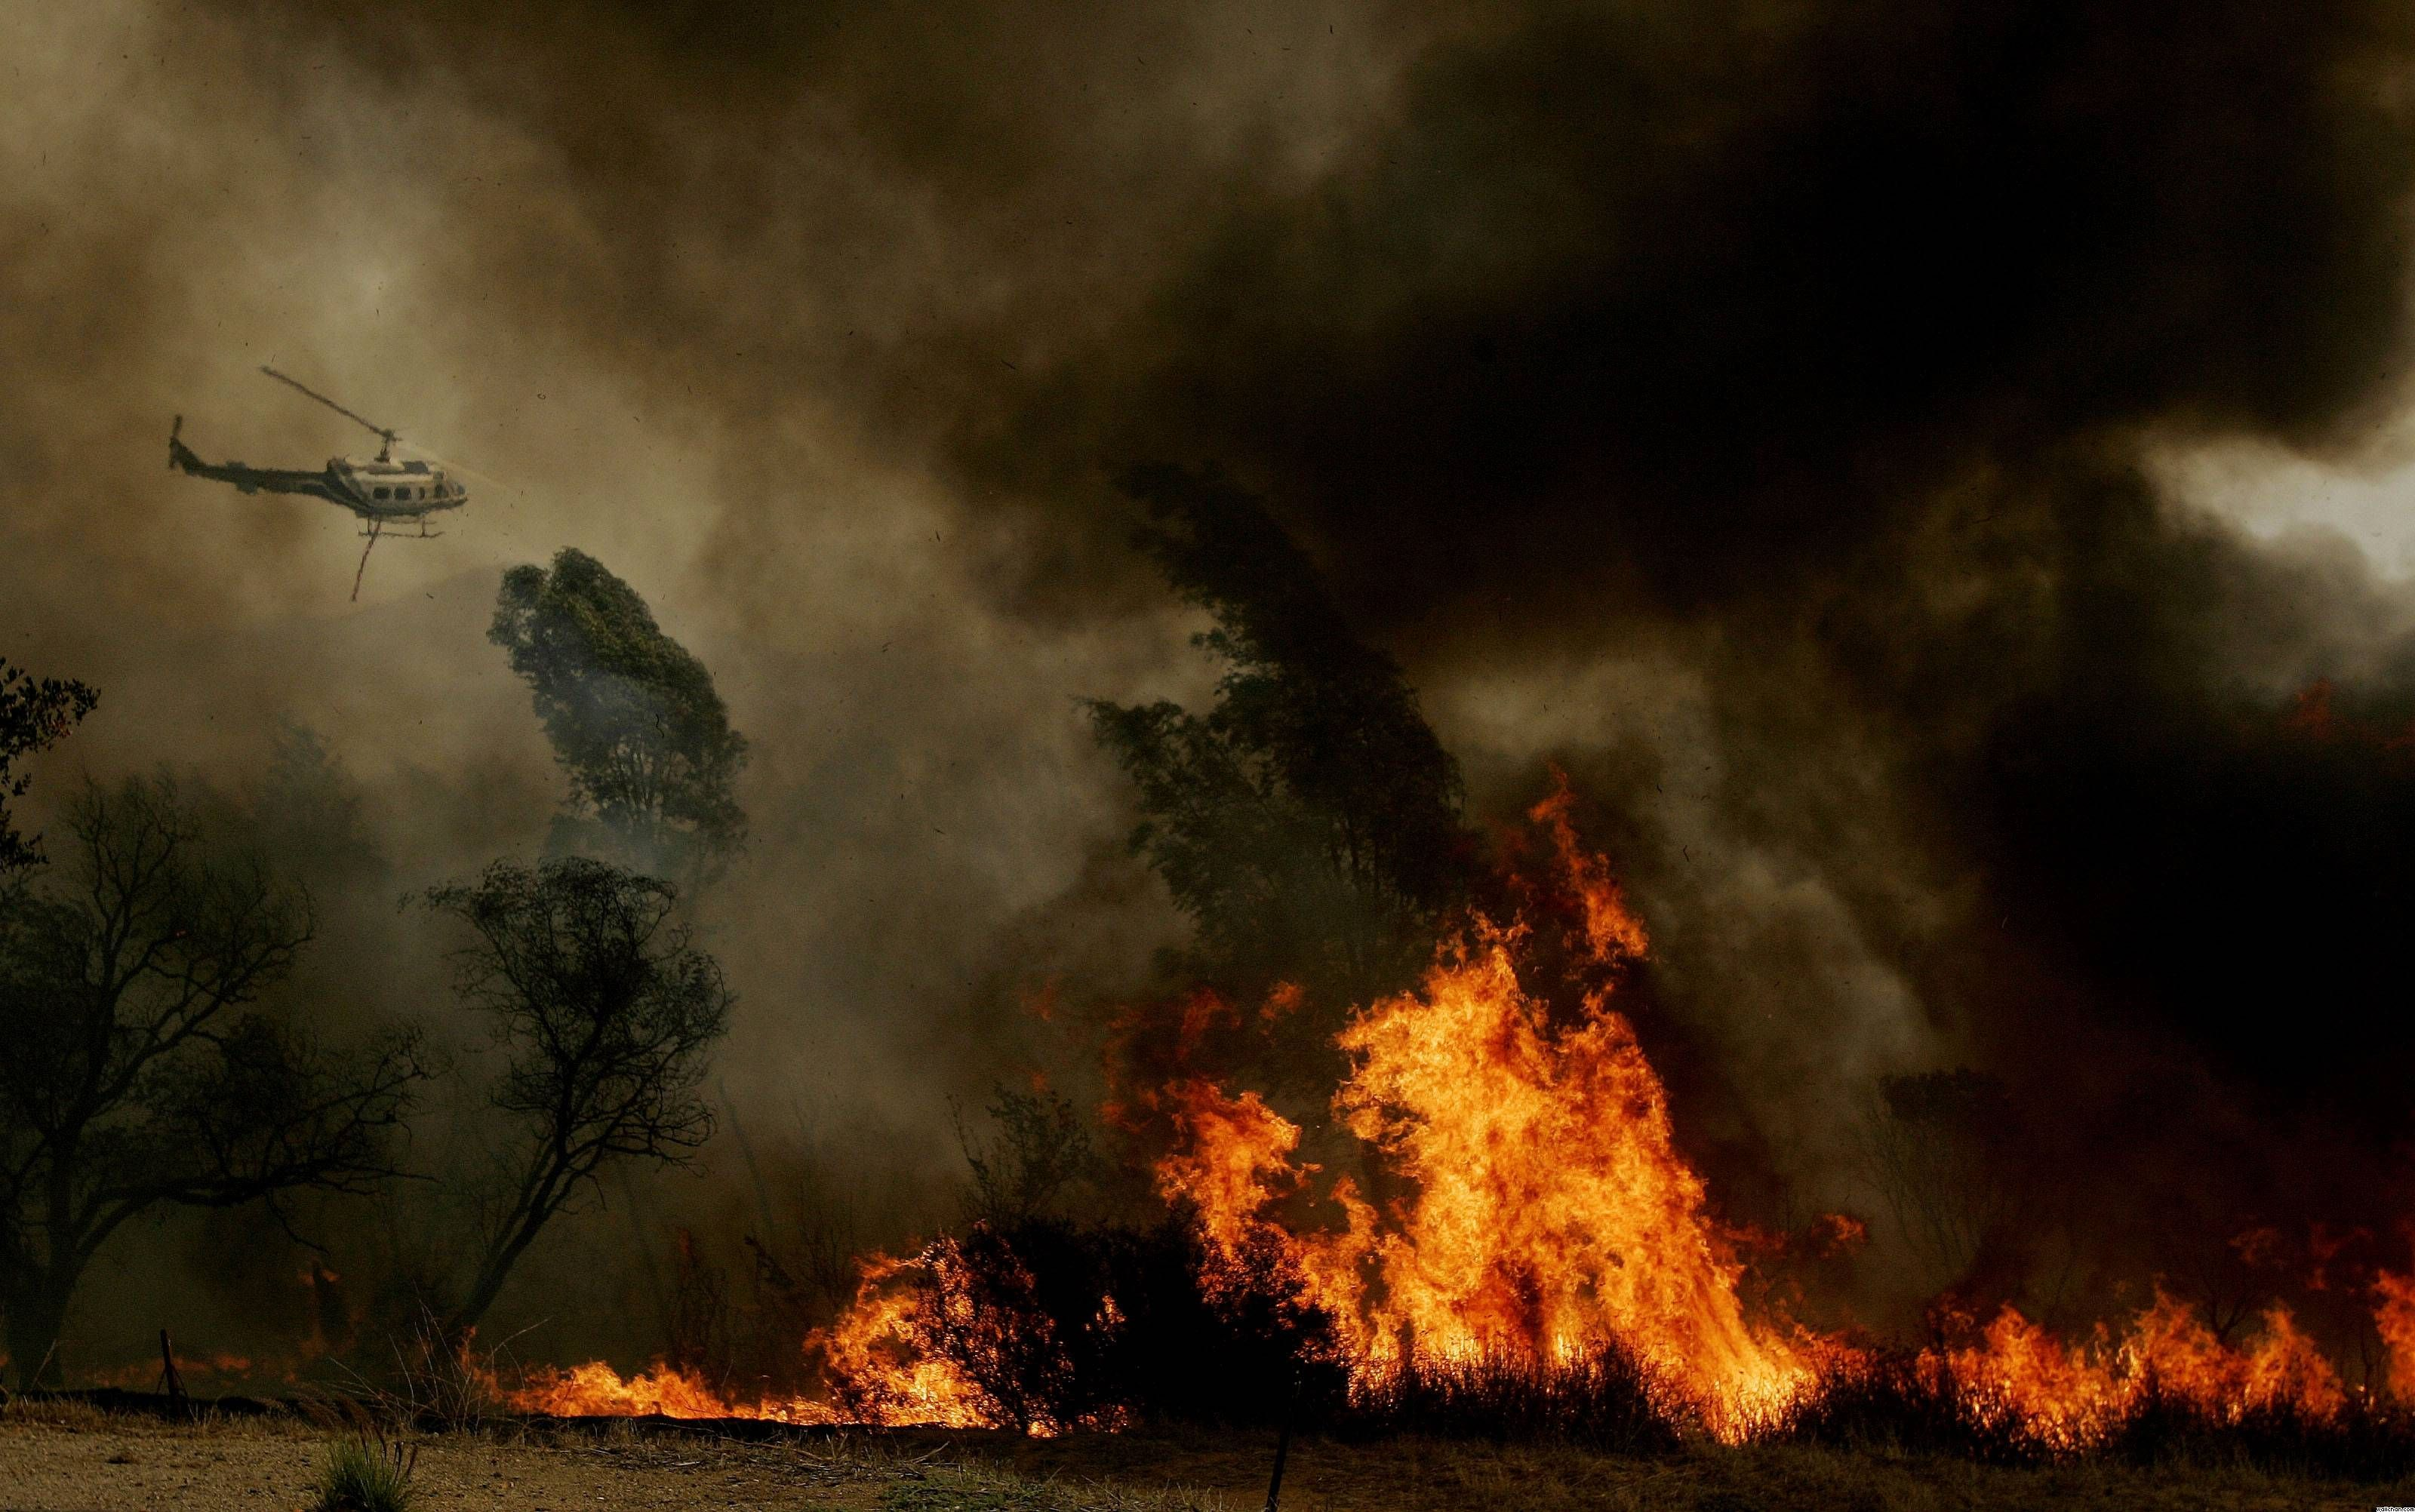 Forest Fire Wallpapers Wallpaper Cave Fire Photography Fire Image Photography Wallpaper